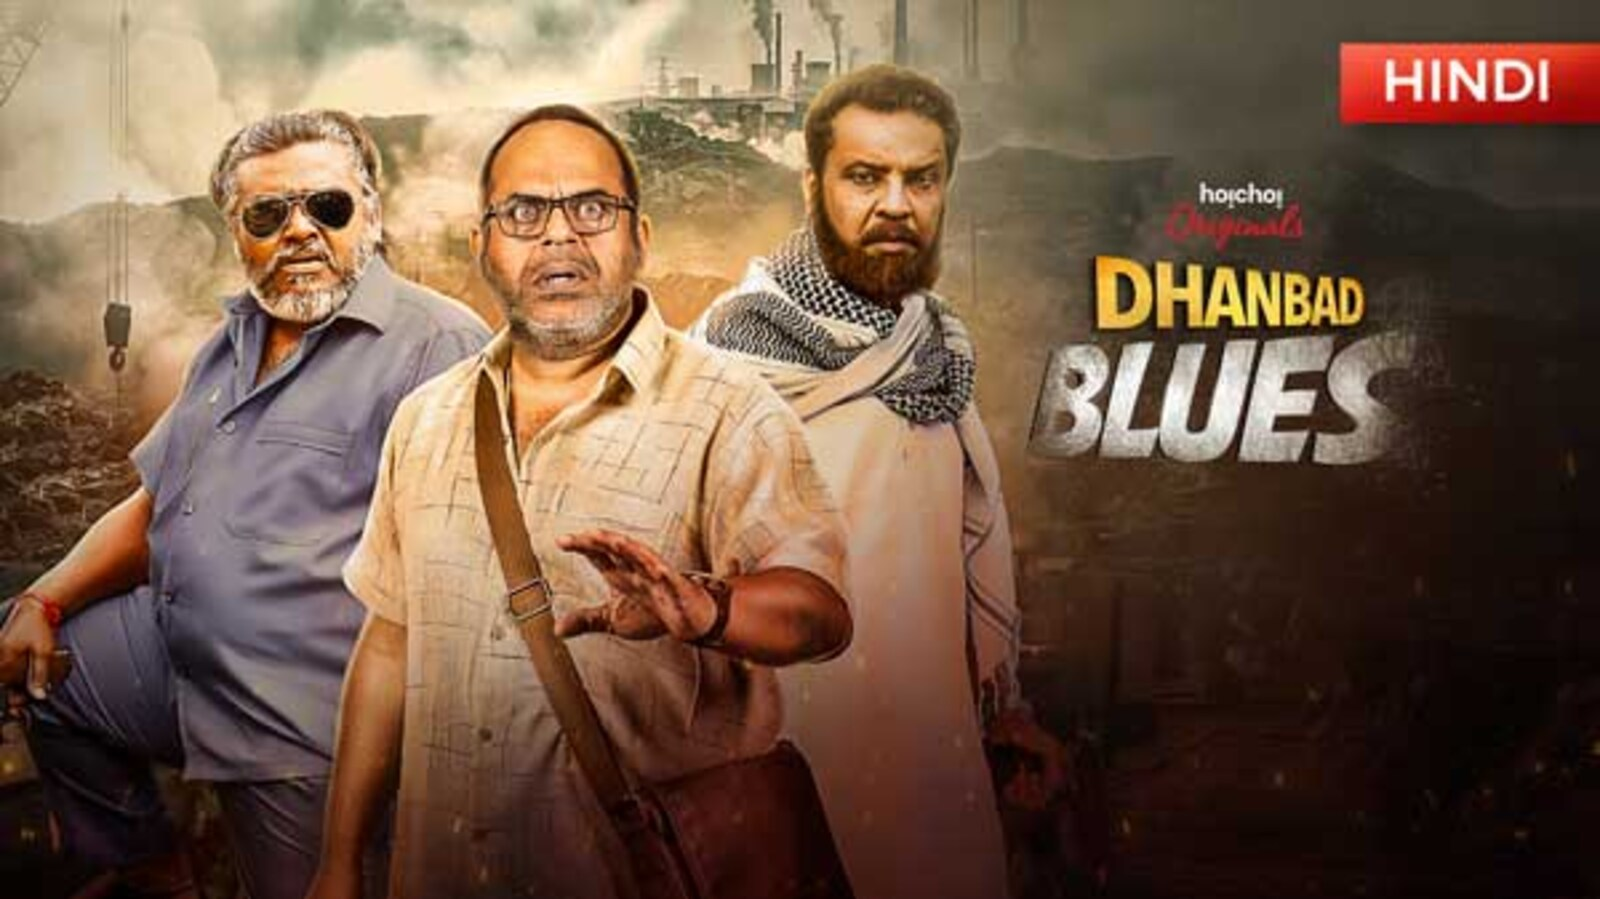 Dhanbad Blues (Hindi) | Hoichoi - Movies | Originals